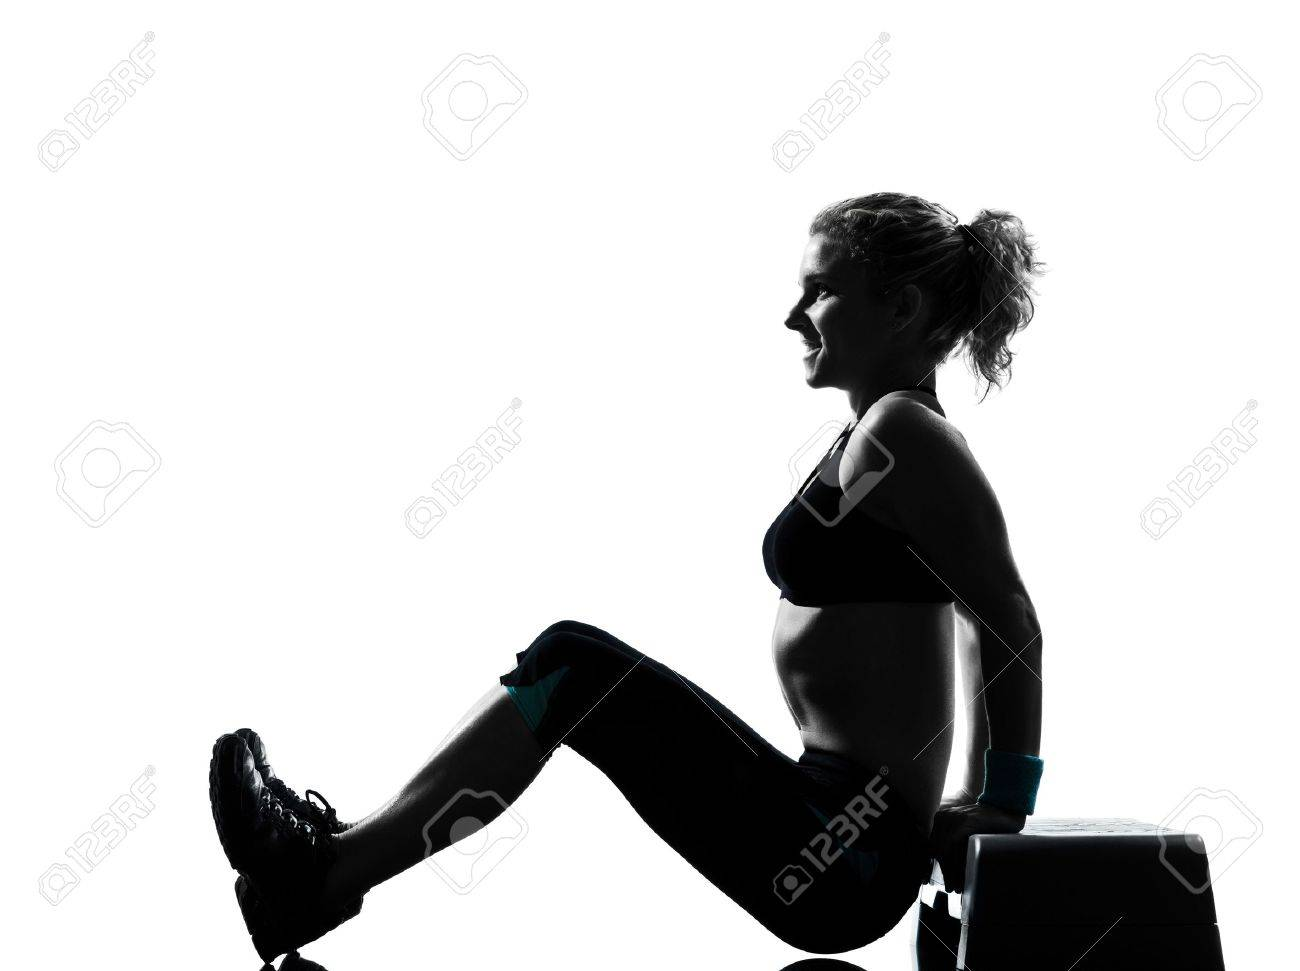 one woman exercising workout fitness aerobic exercise abdominals push ups posture on studio isolated white background Stock Photo - 11753080